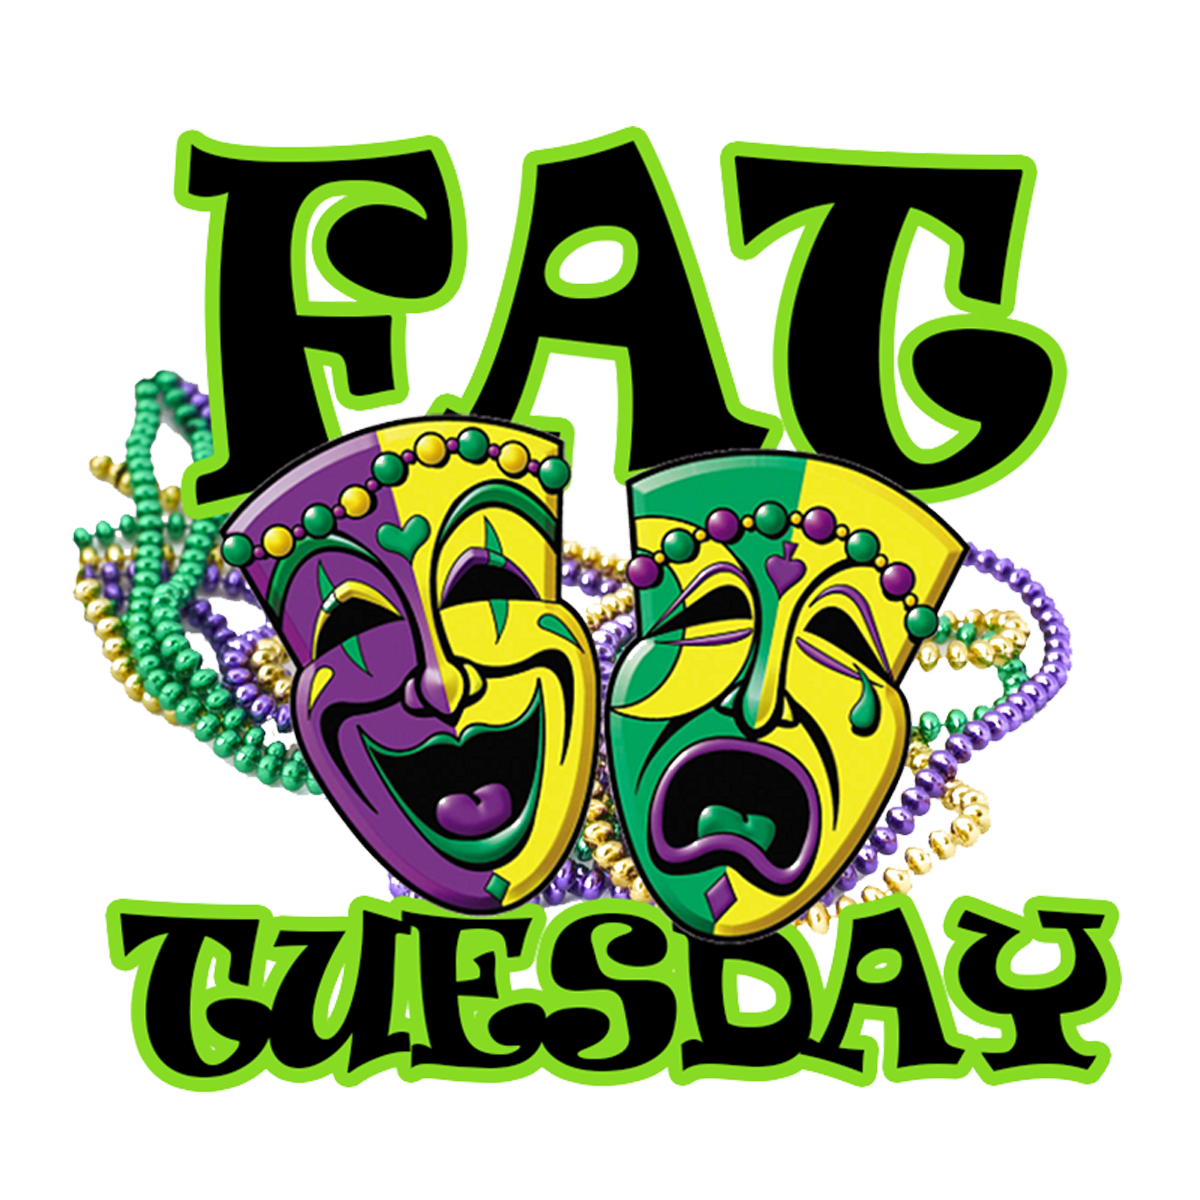 Fat tuesday clipart images vector transparent library Mystic Krewe of Aquarius Annual Fat Tuesday Parade vector transparent library